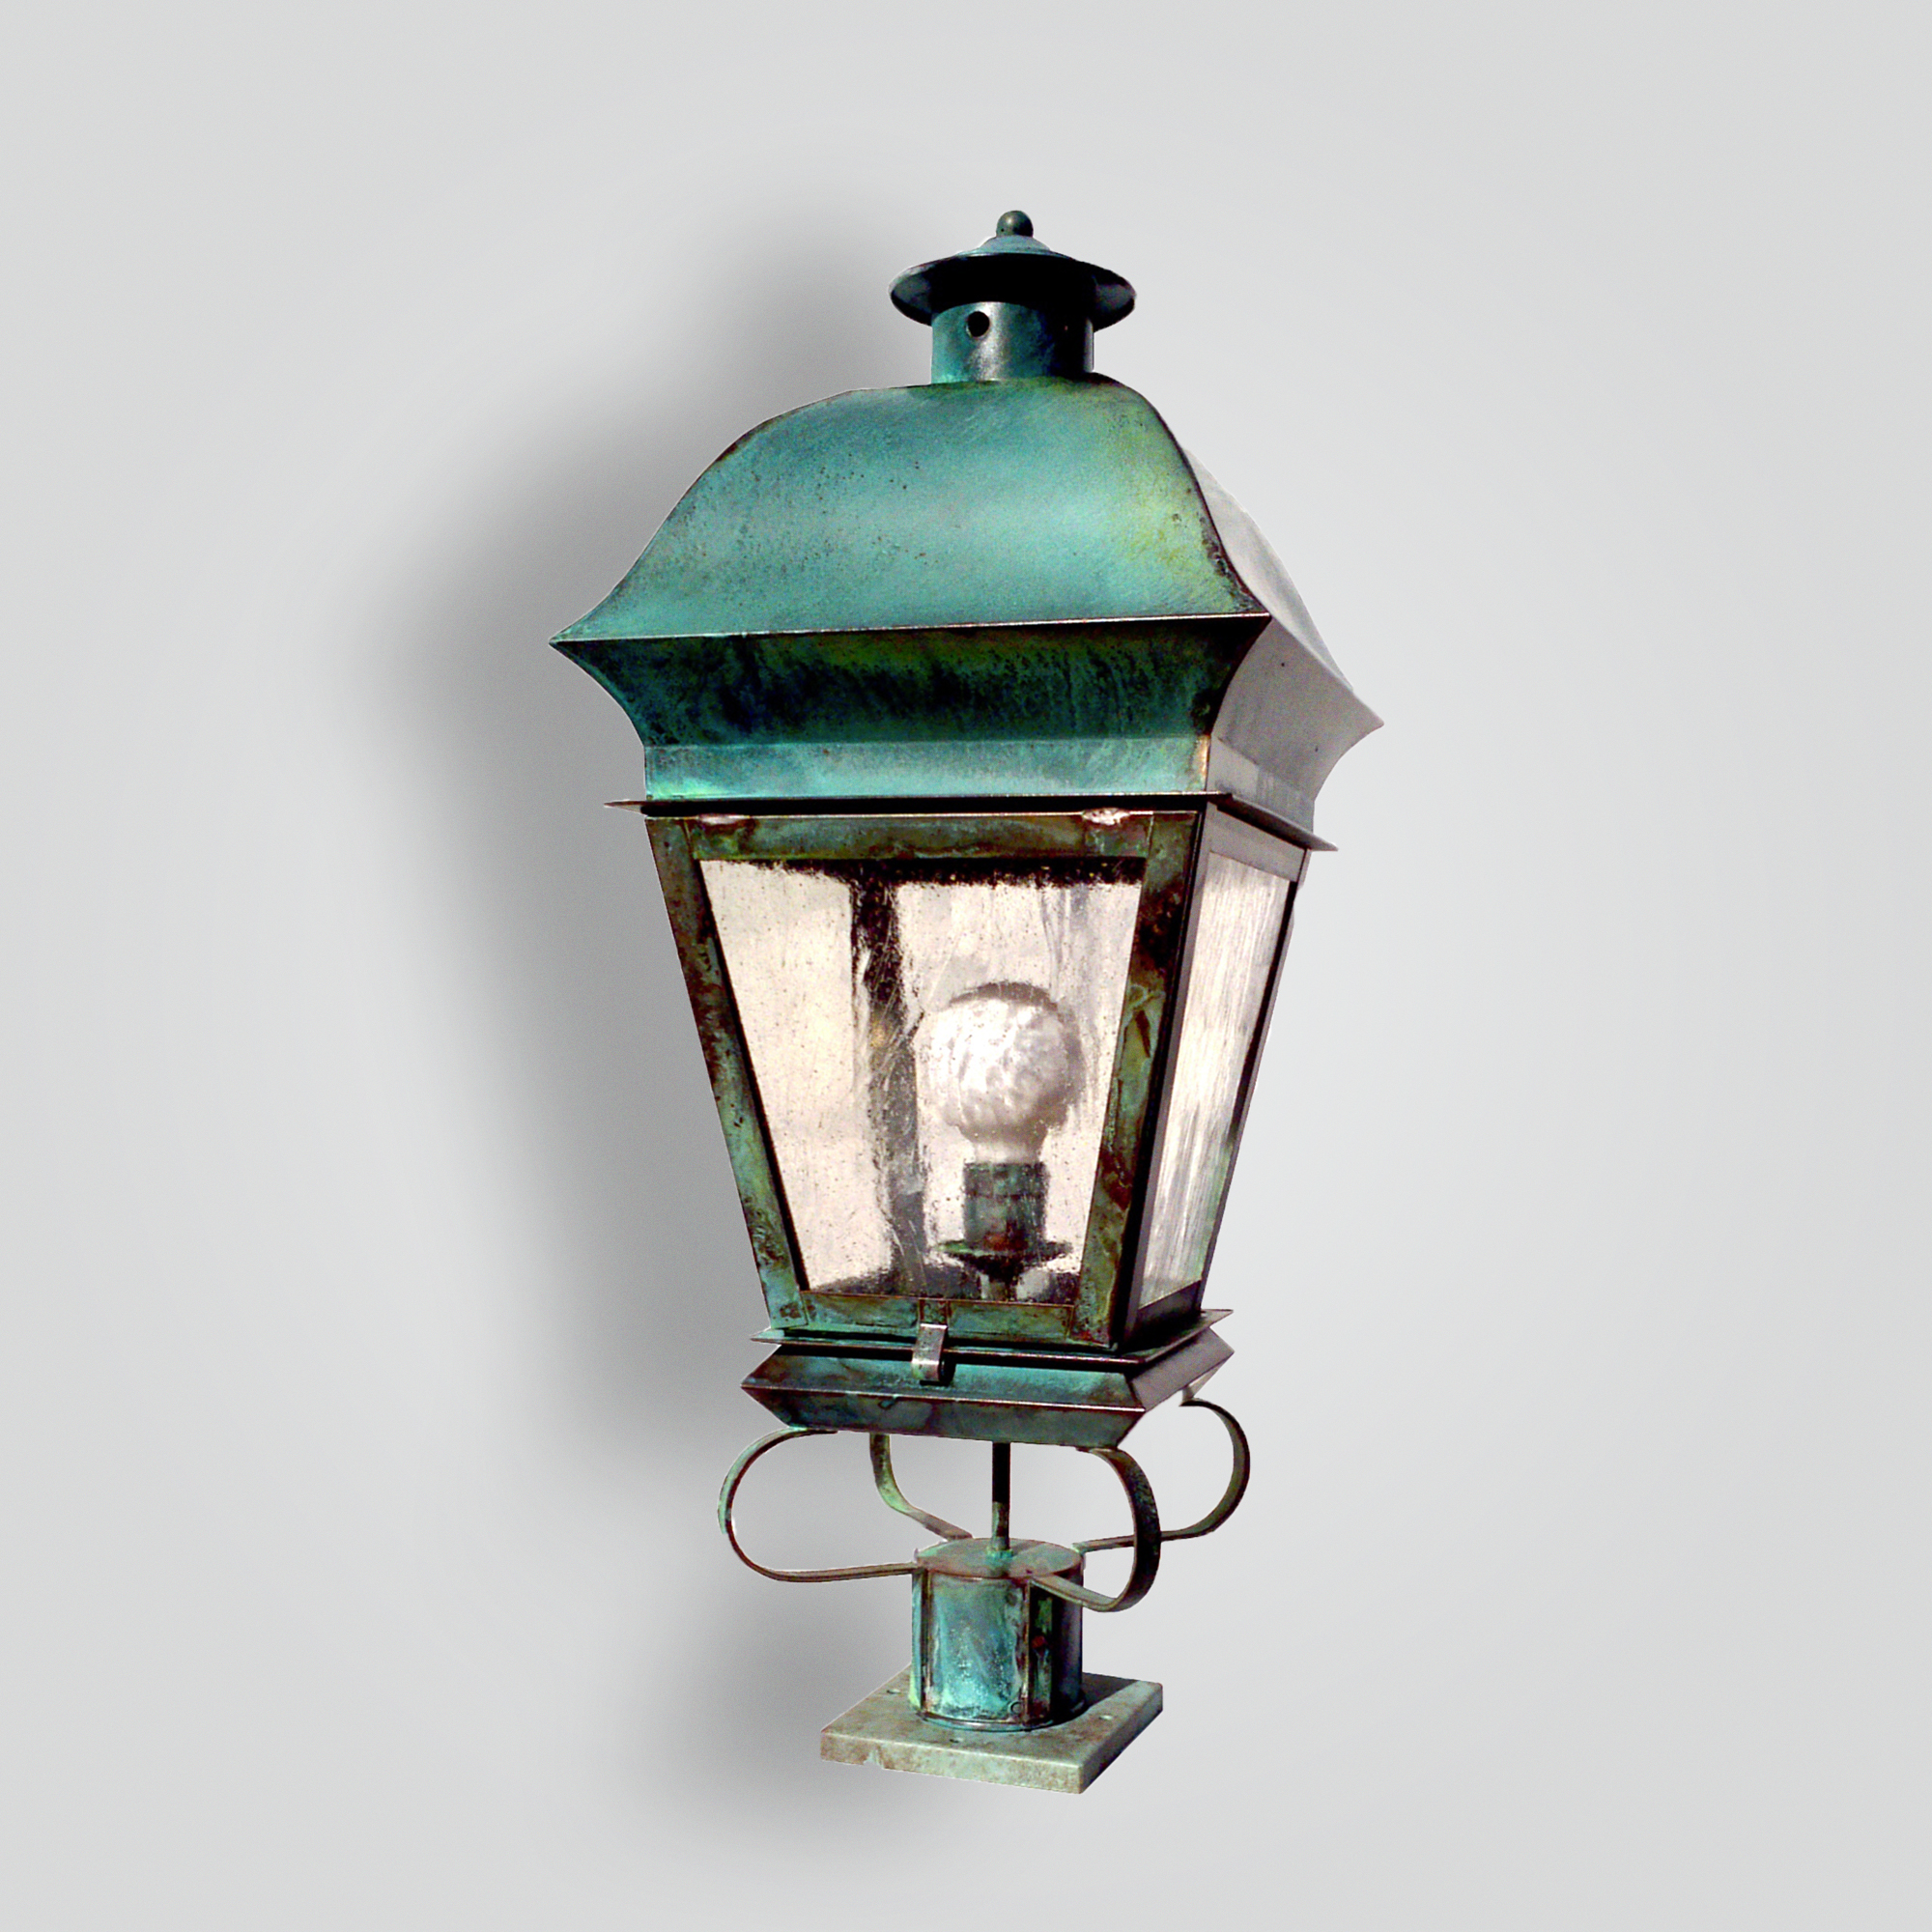 523-mb1-br-p-sh French Verde Pilaster Light – ADG Lighting Collection